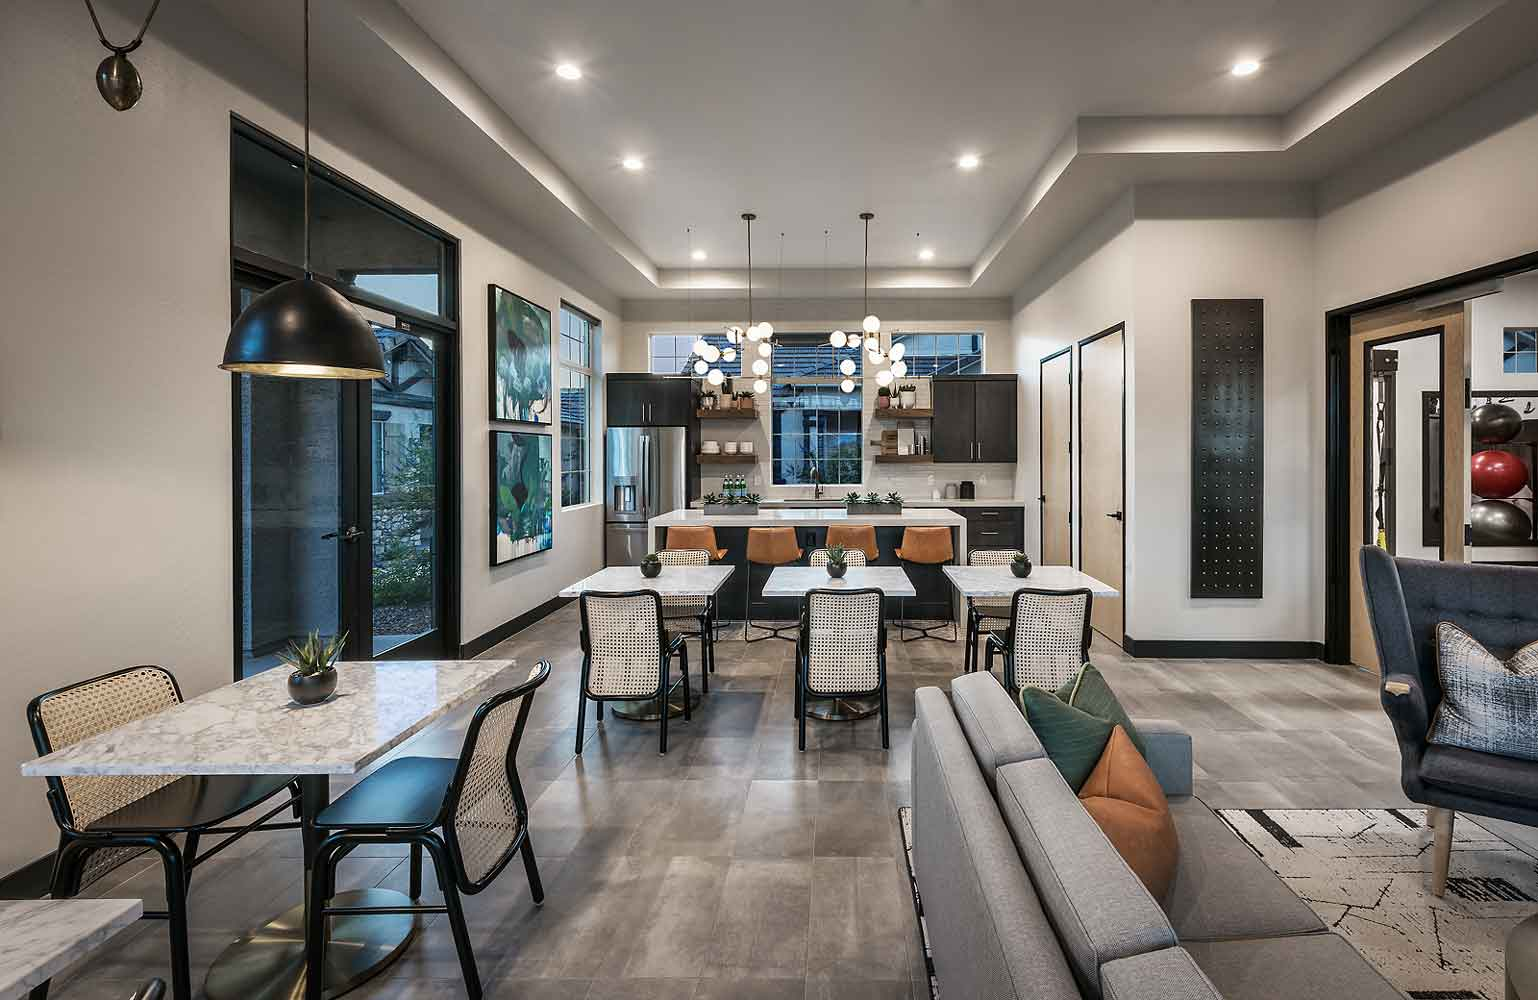 Apartment For Lease at Olive Marketplace Apartments in Glendale, AZ